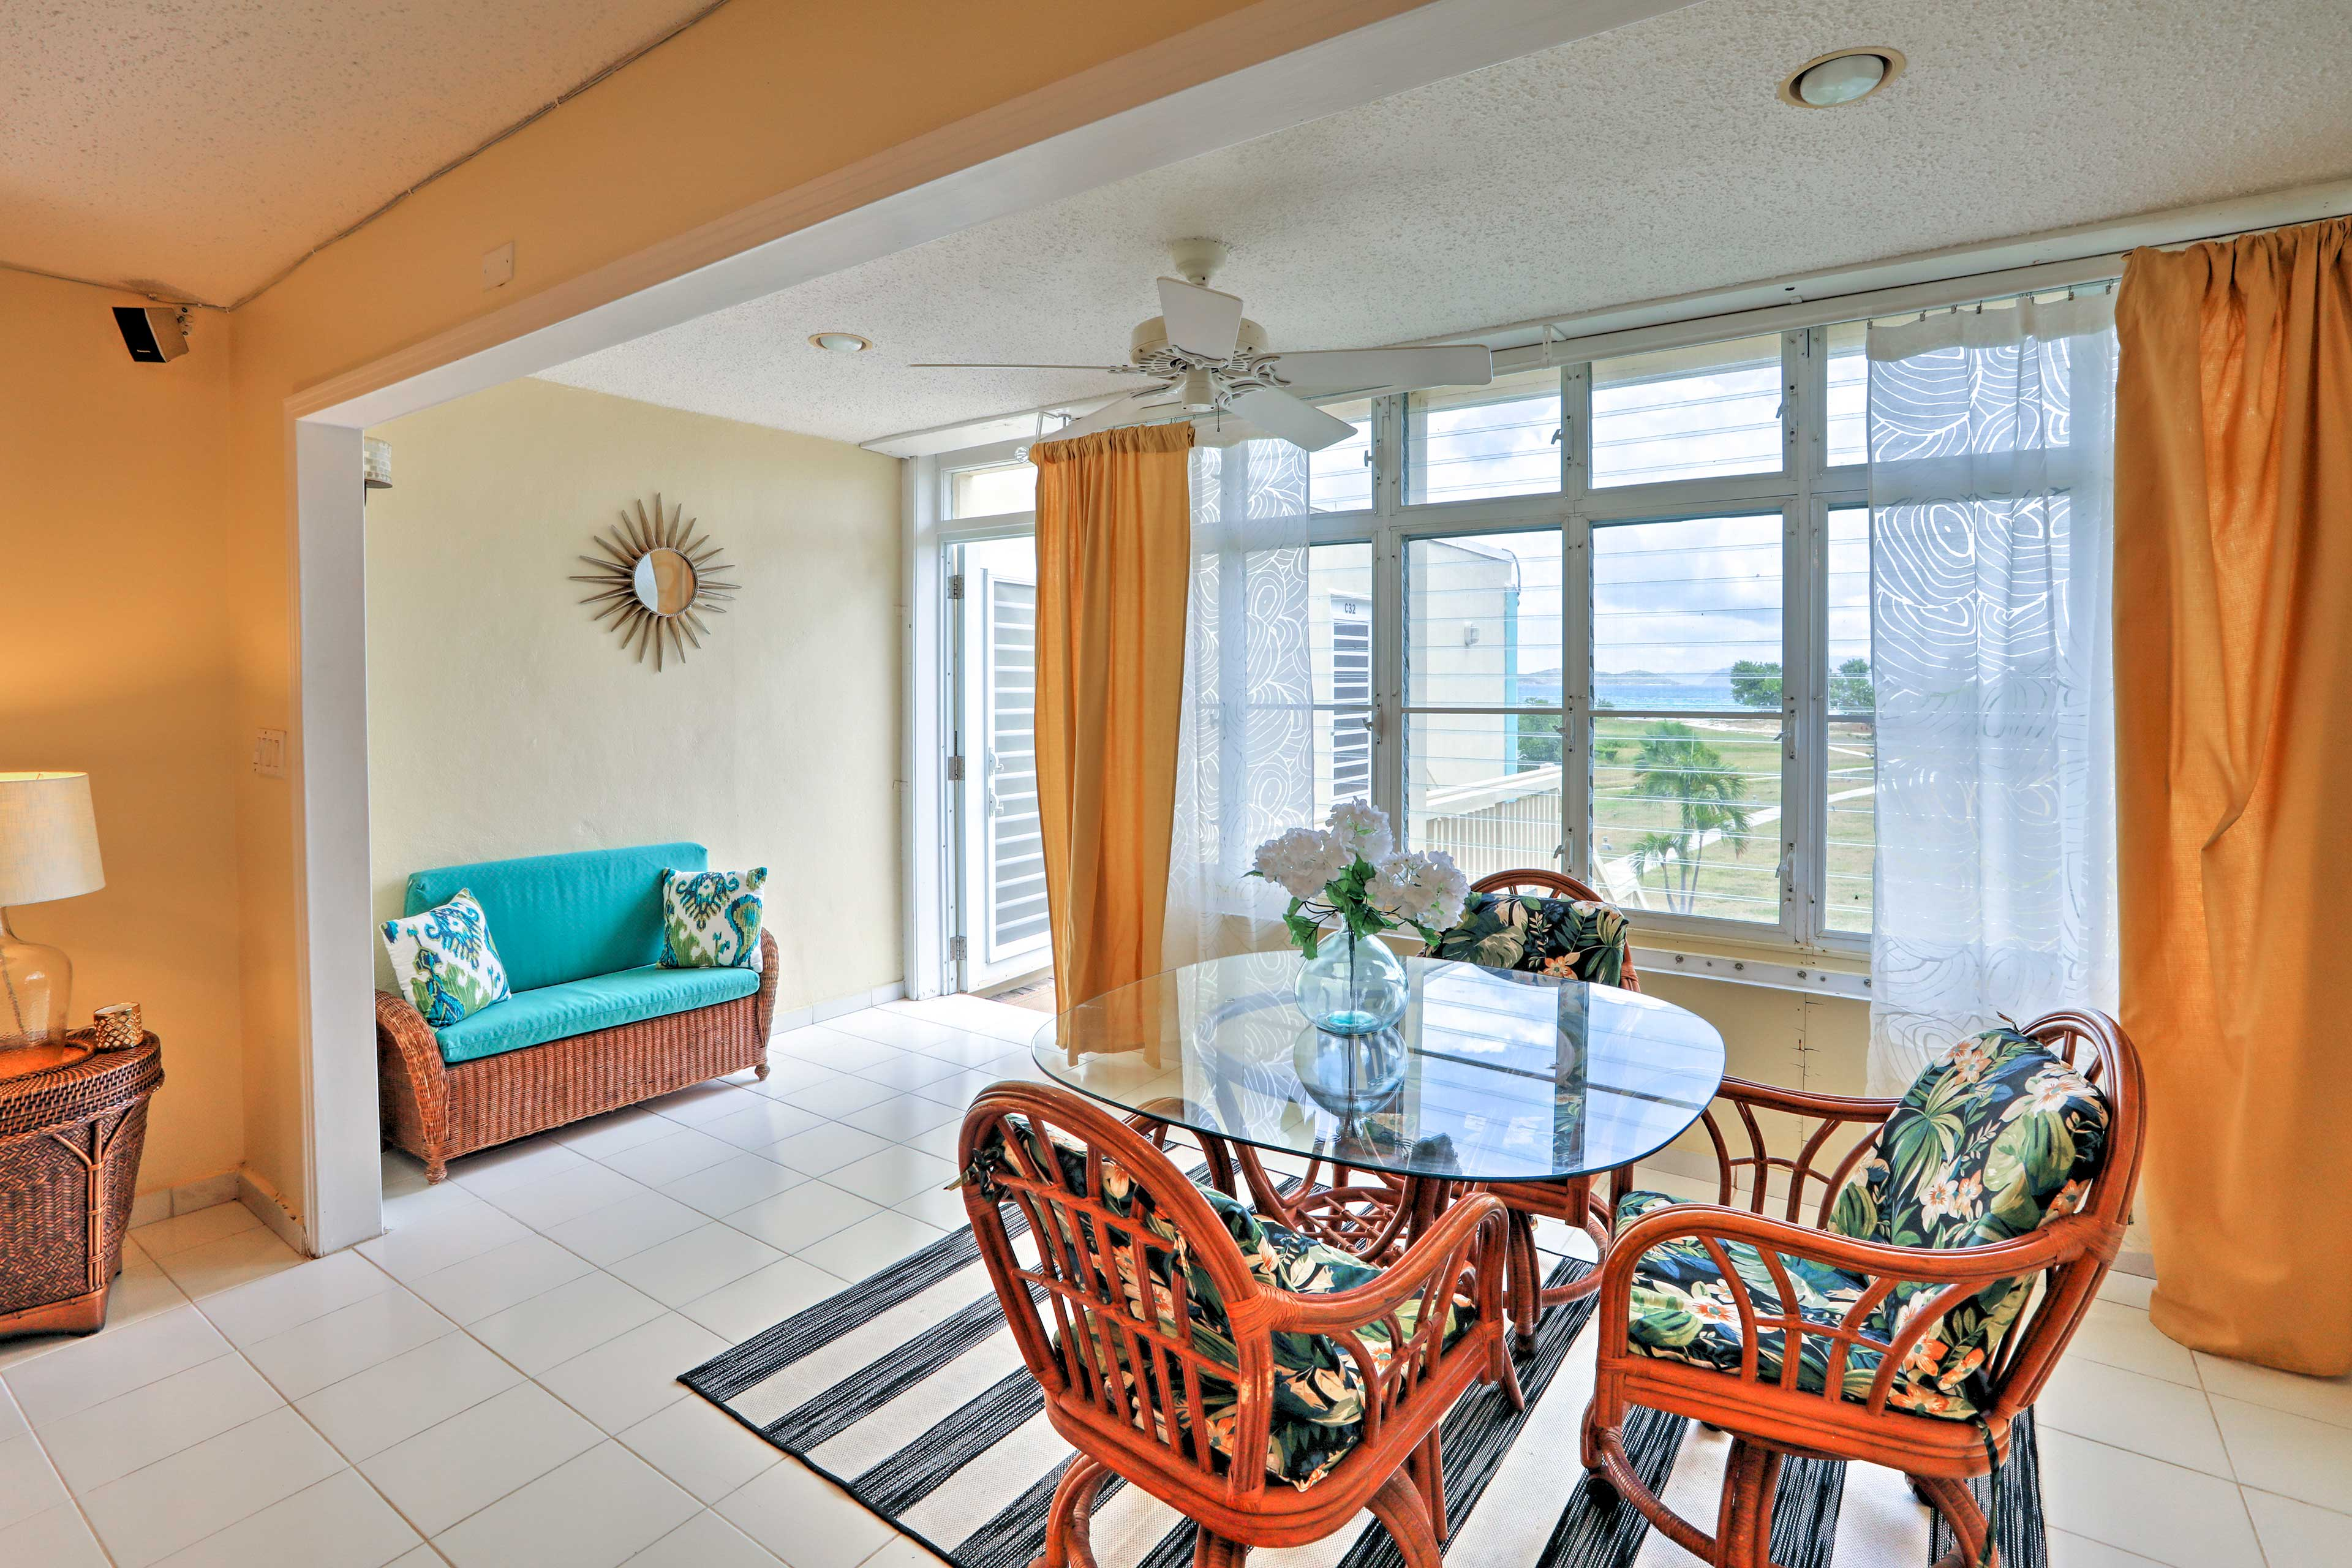 Views from this airy unit include that of premier landscaping outside!